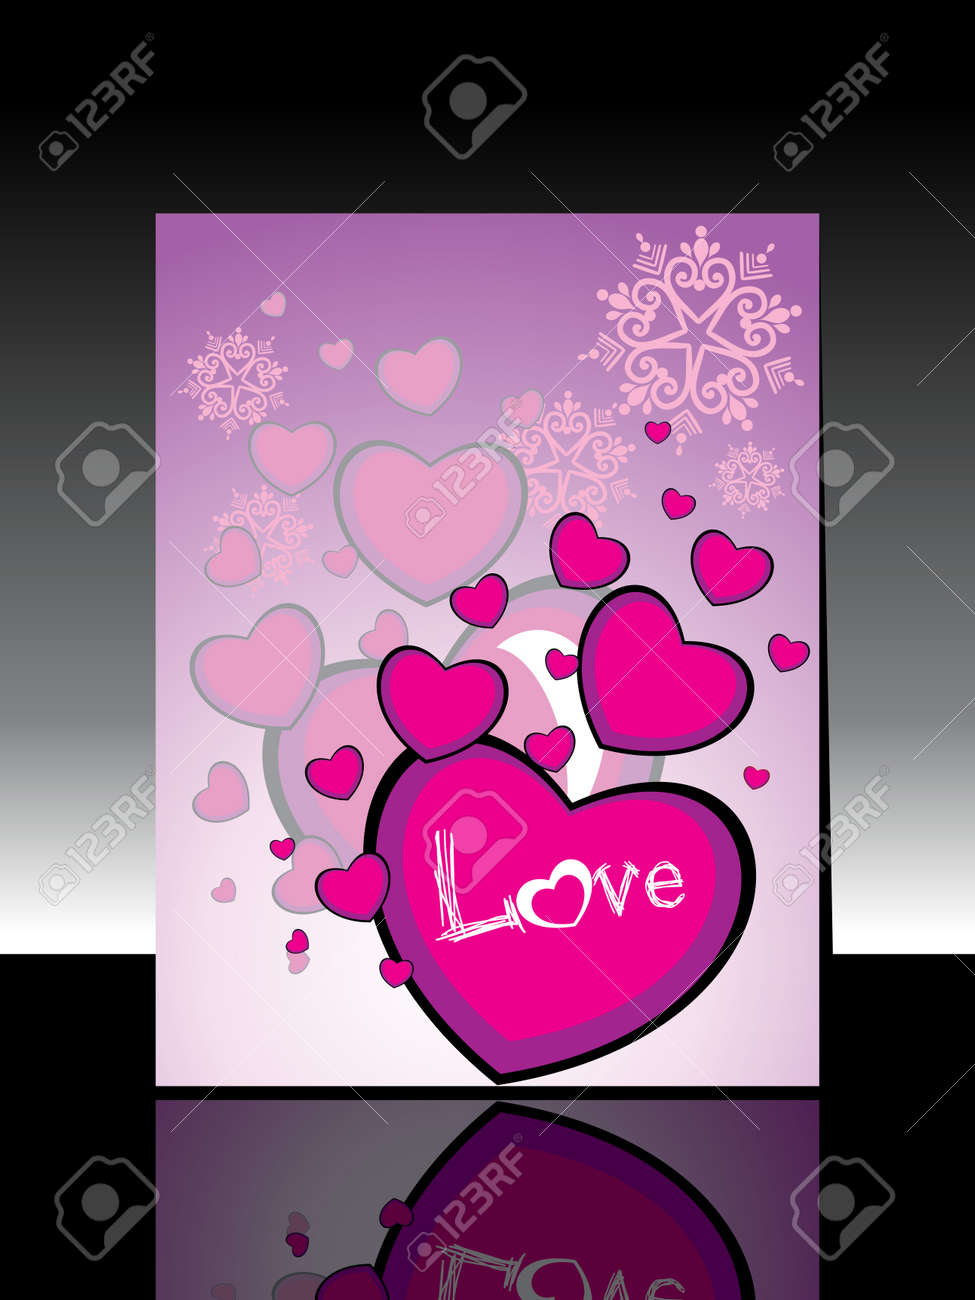 Abstract Heart Shape Concept Design With Text Love Greeting Card